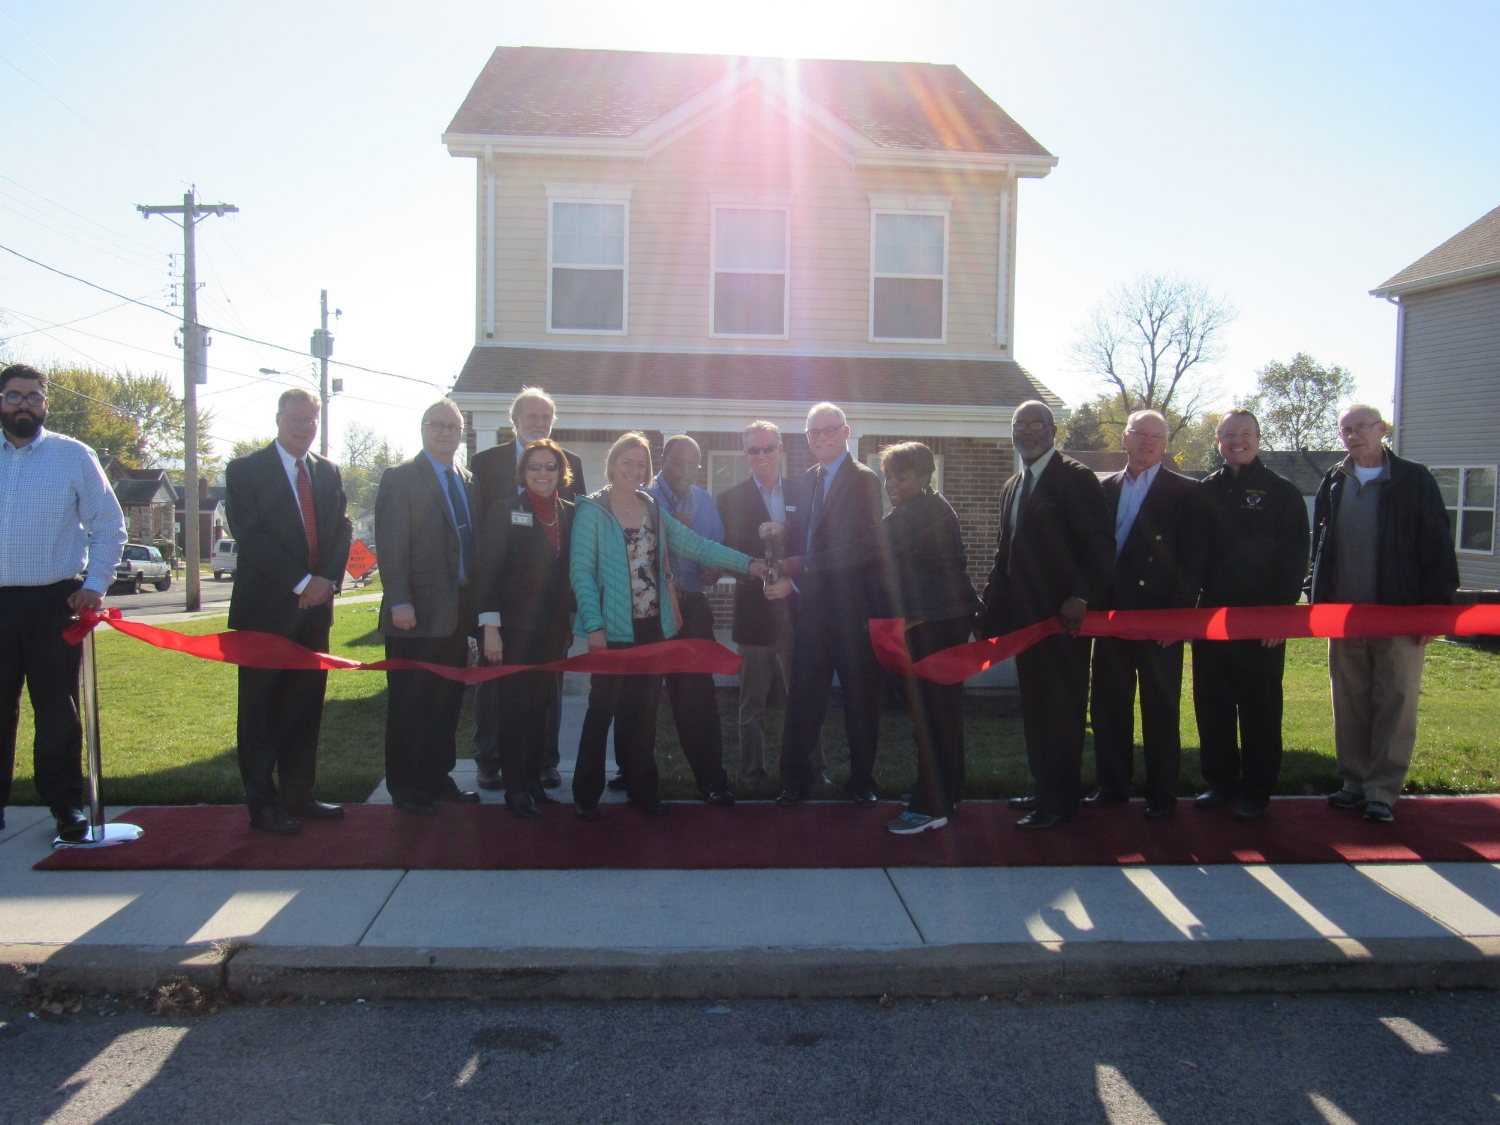 Lemay Homes Grand Opening and Ribbon Cutting Ceremony, November 2016